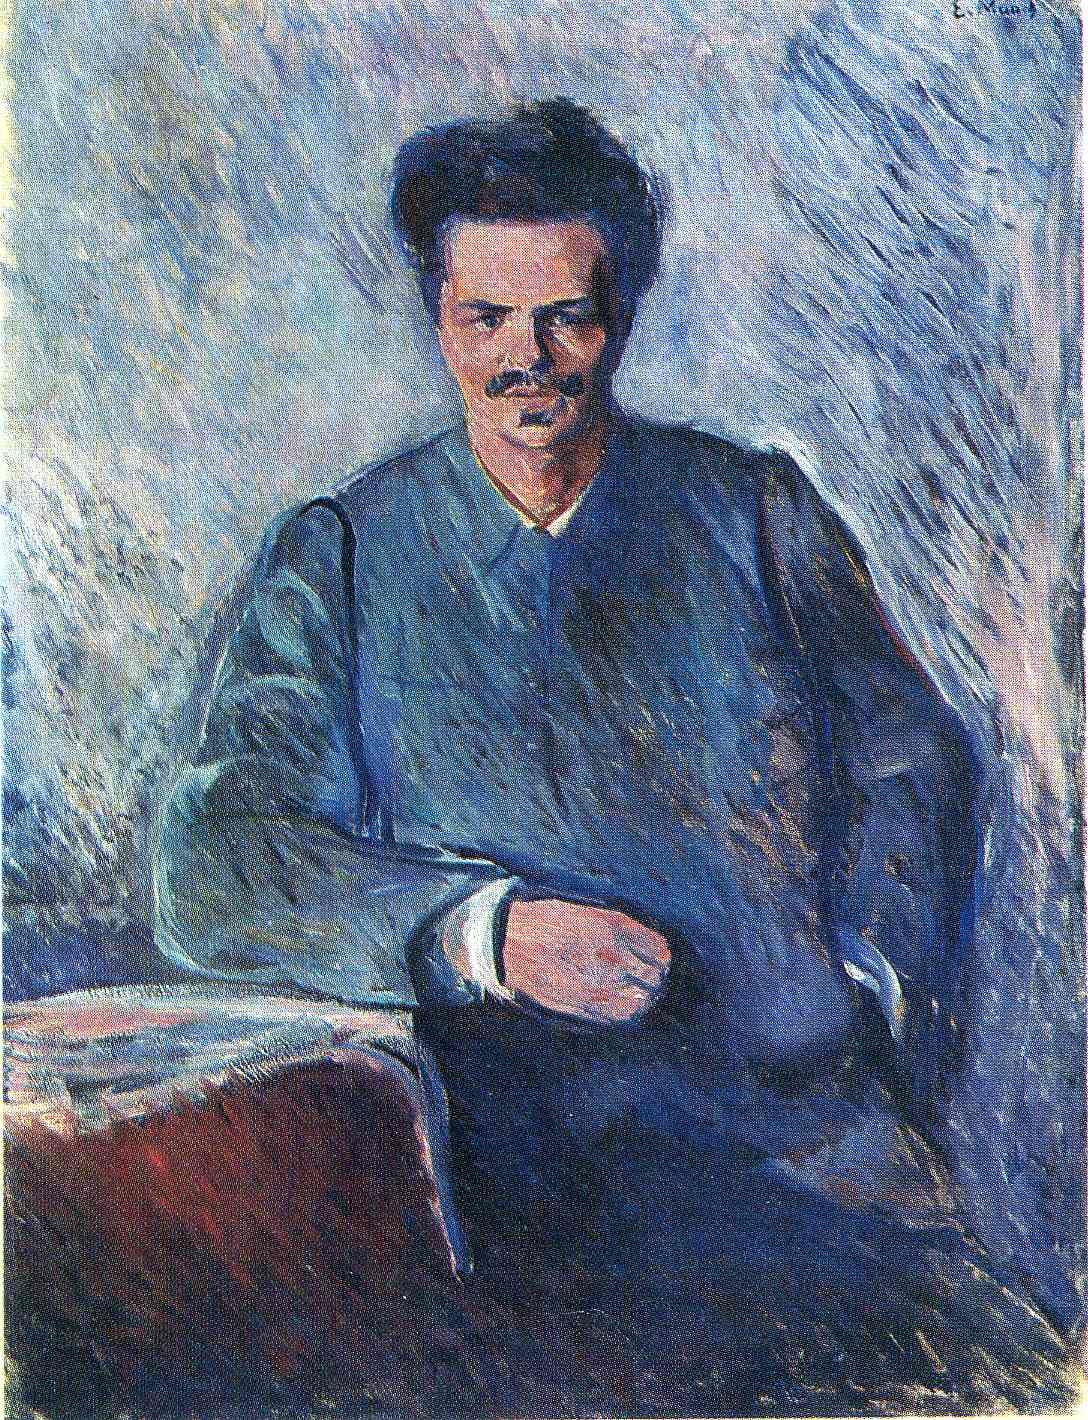 AUGUST STRINDBERG av EDVARD MUNCH